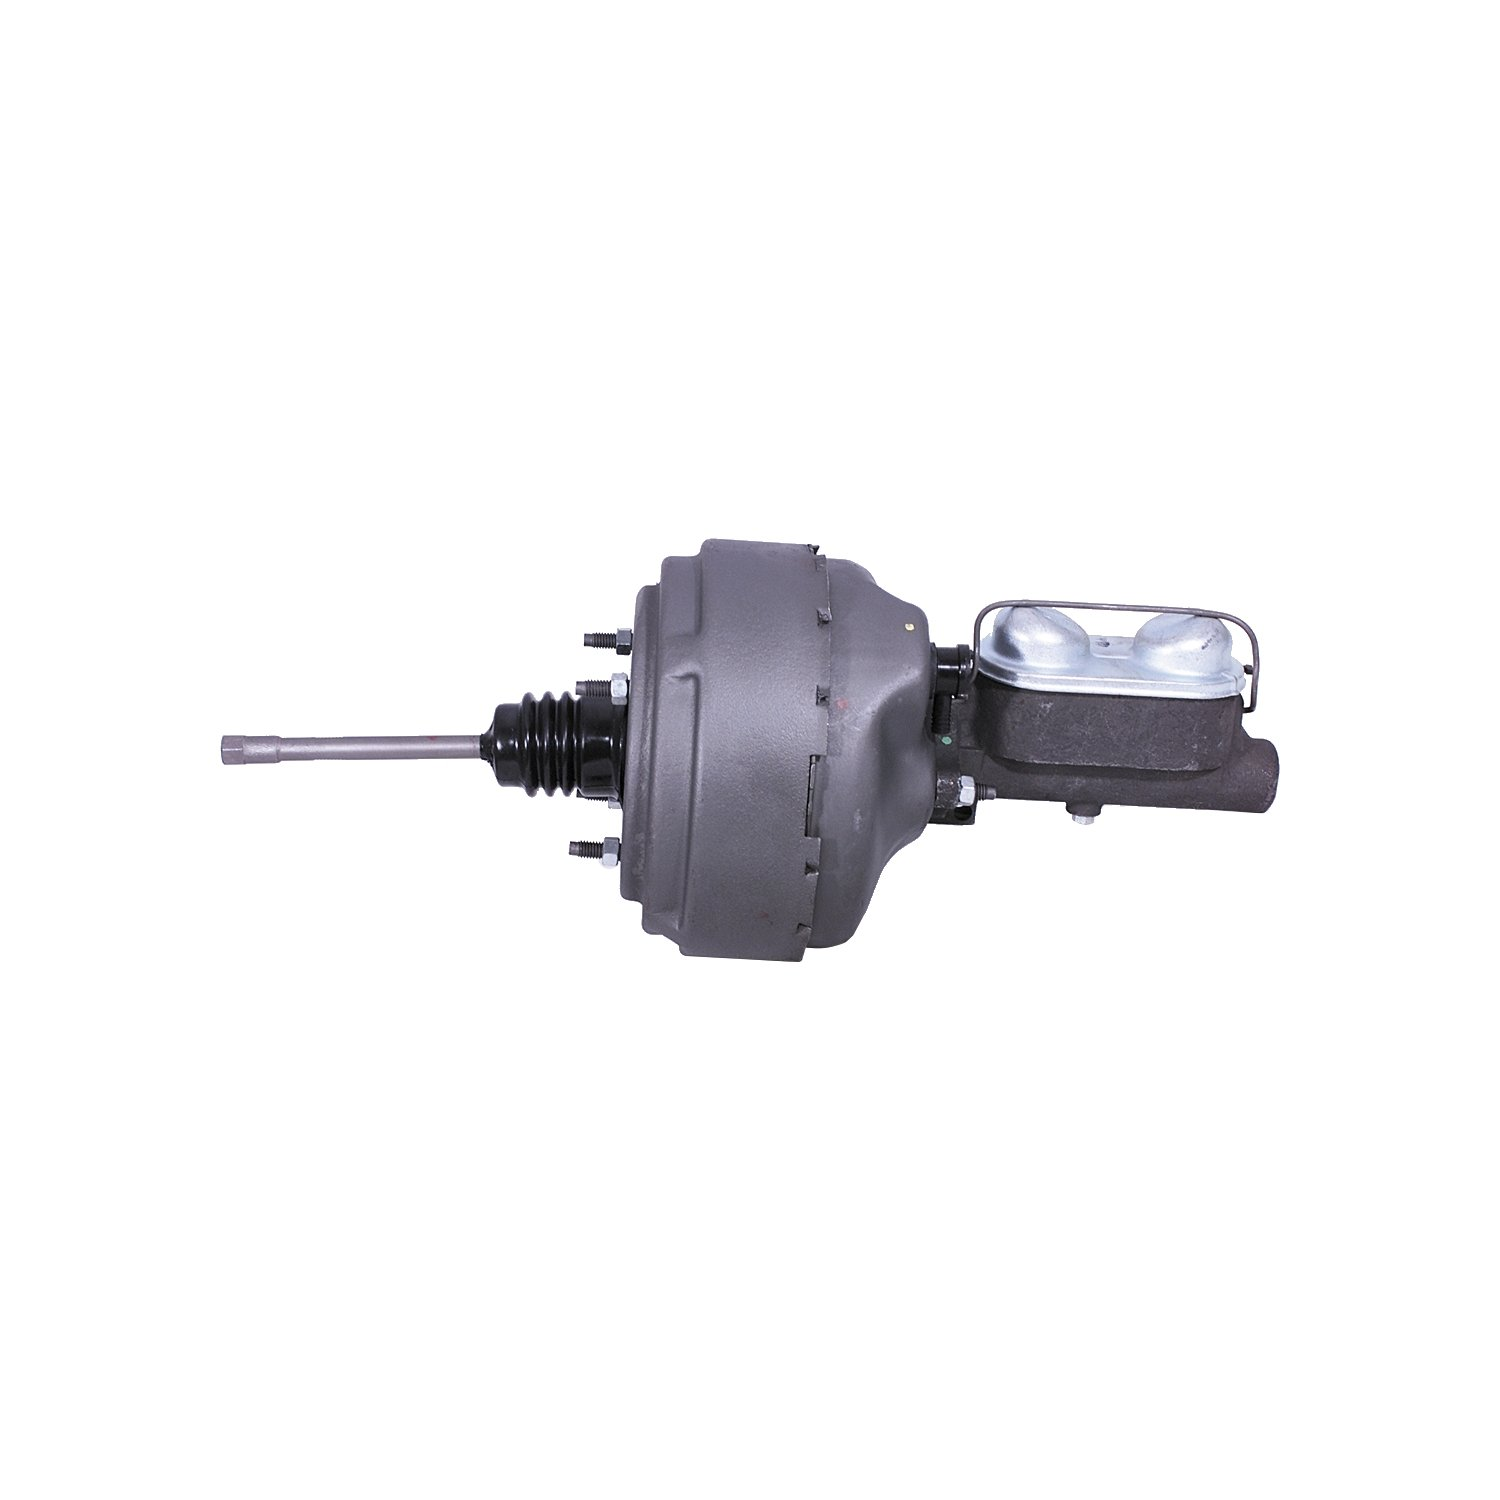 Cardone 50-3114 Remanufactured Power Brake Booster with Master Cylinder A1 Cardone